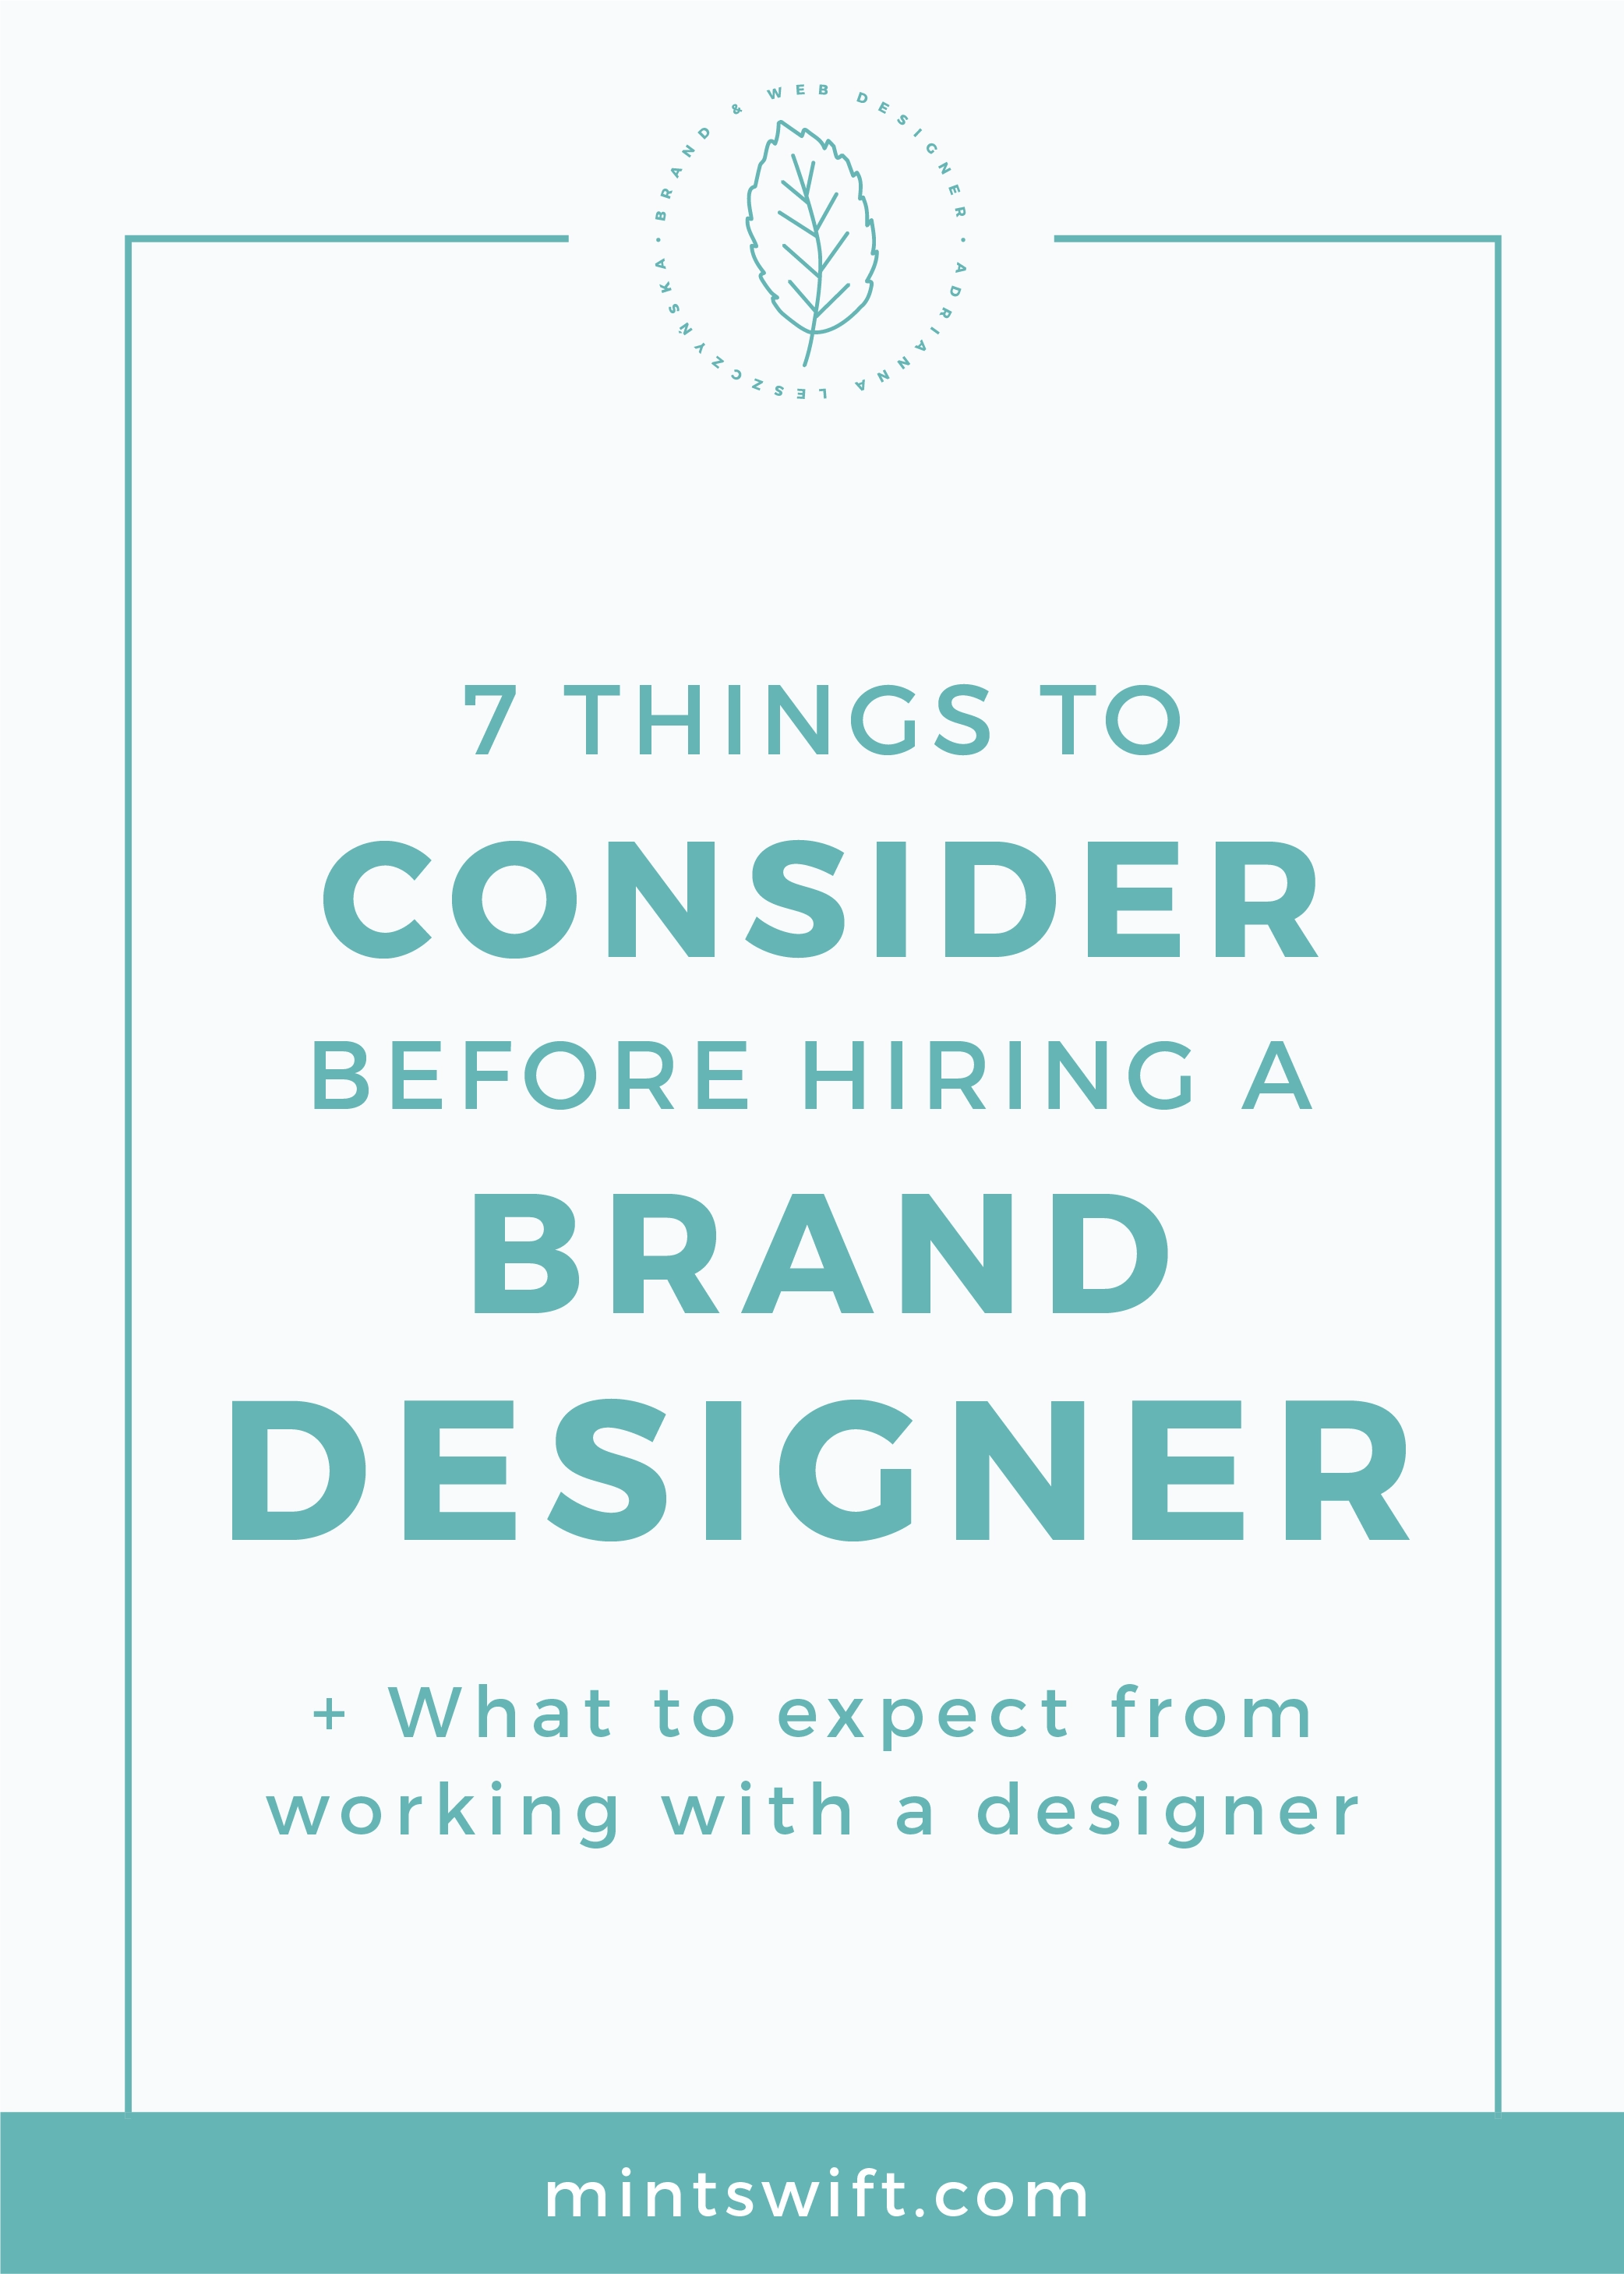 7 Things to Consider Before Hiring a Brand Designer (+ What to Expect from Working with a Designer) MintSwift